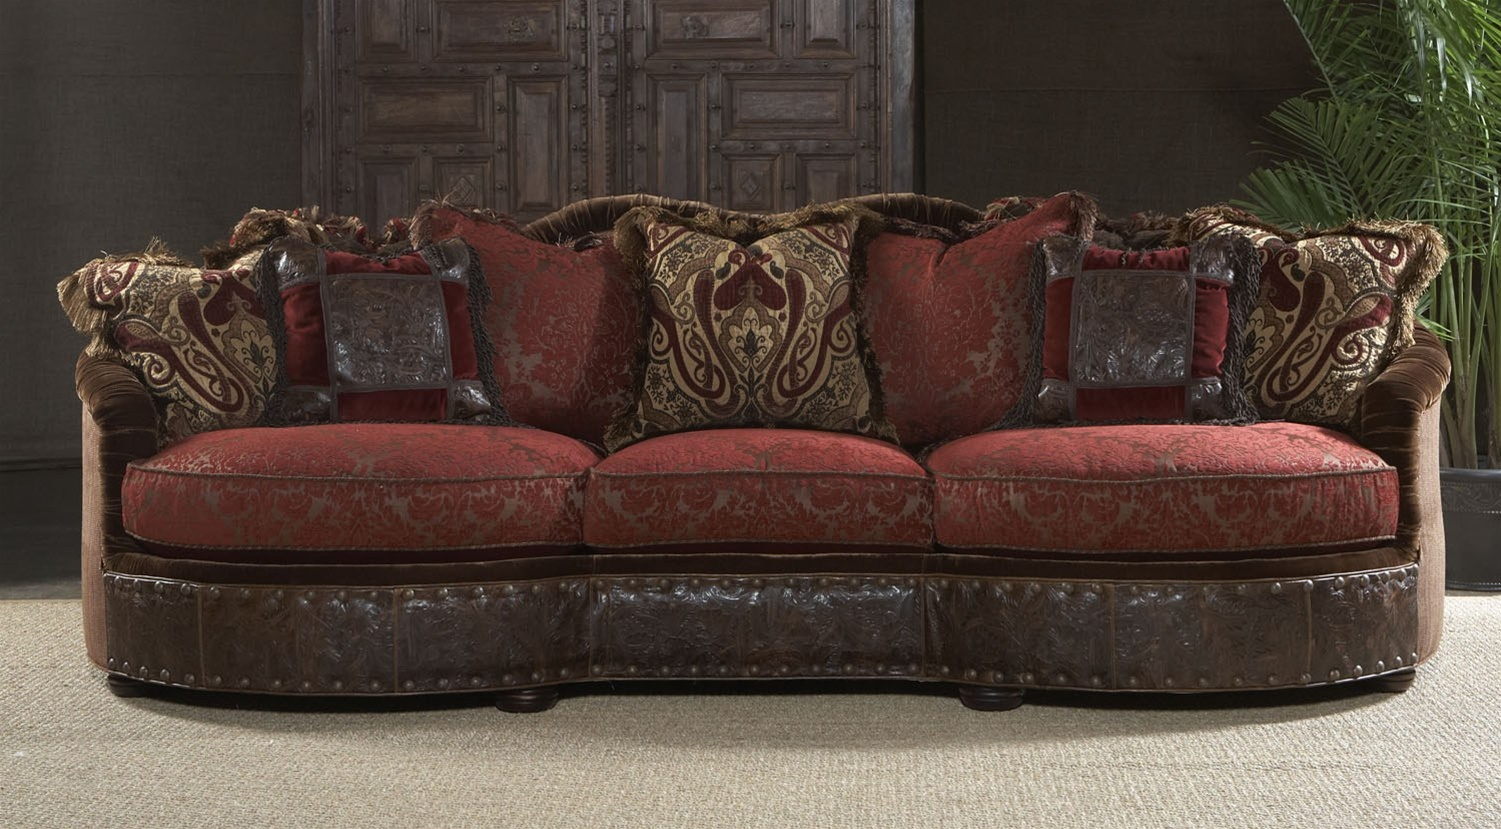 Luxury Red Burgundy Sofa Or Couch